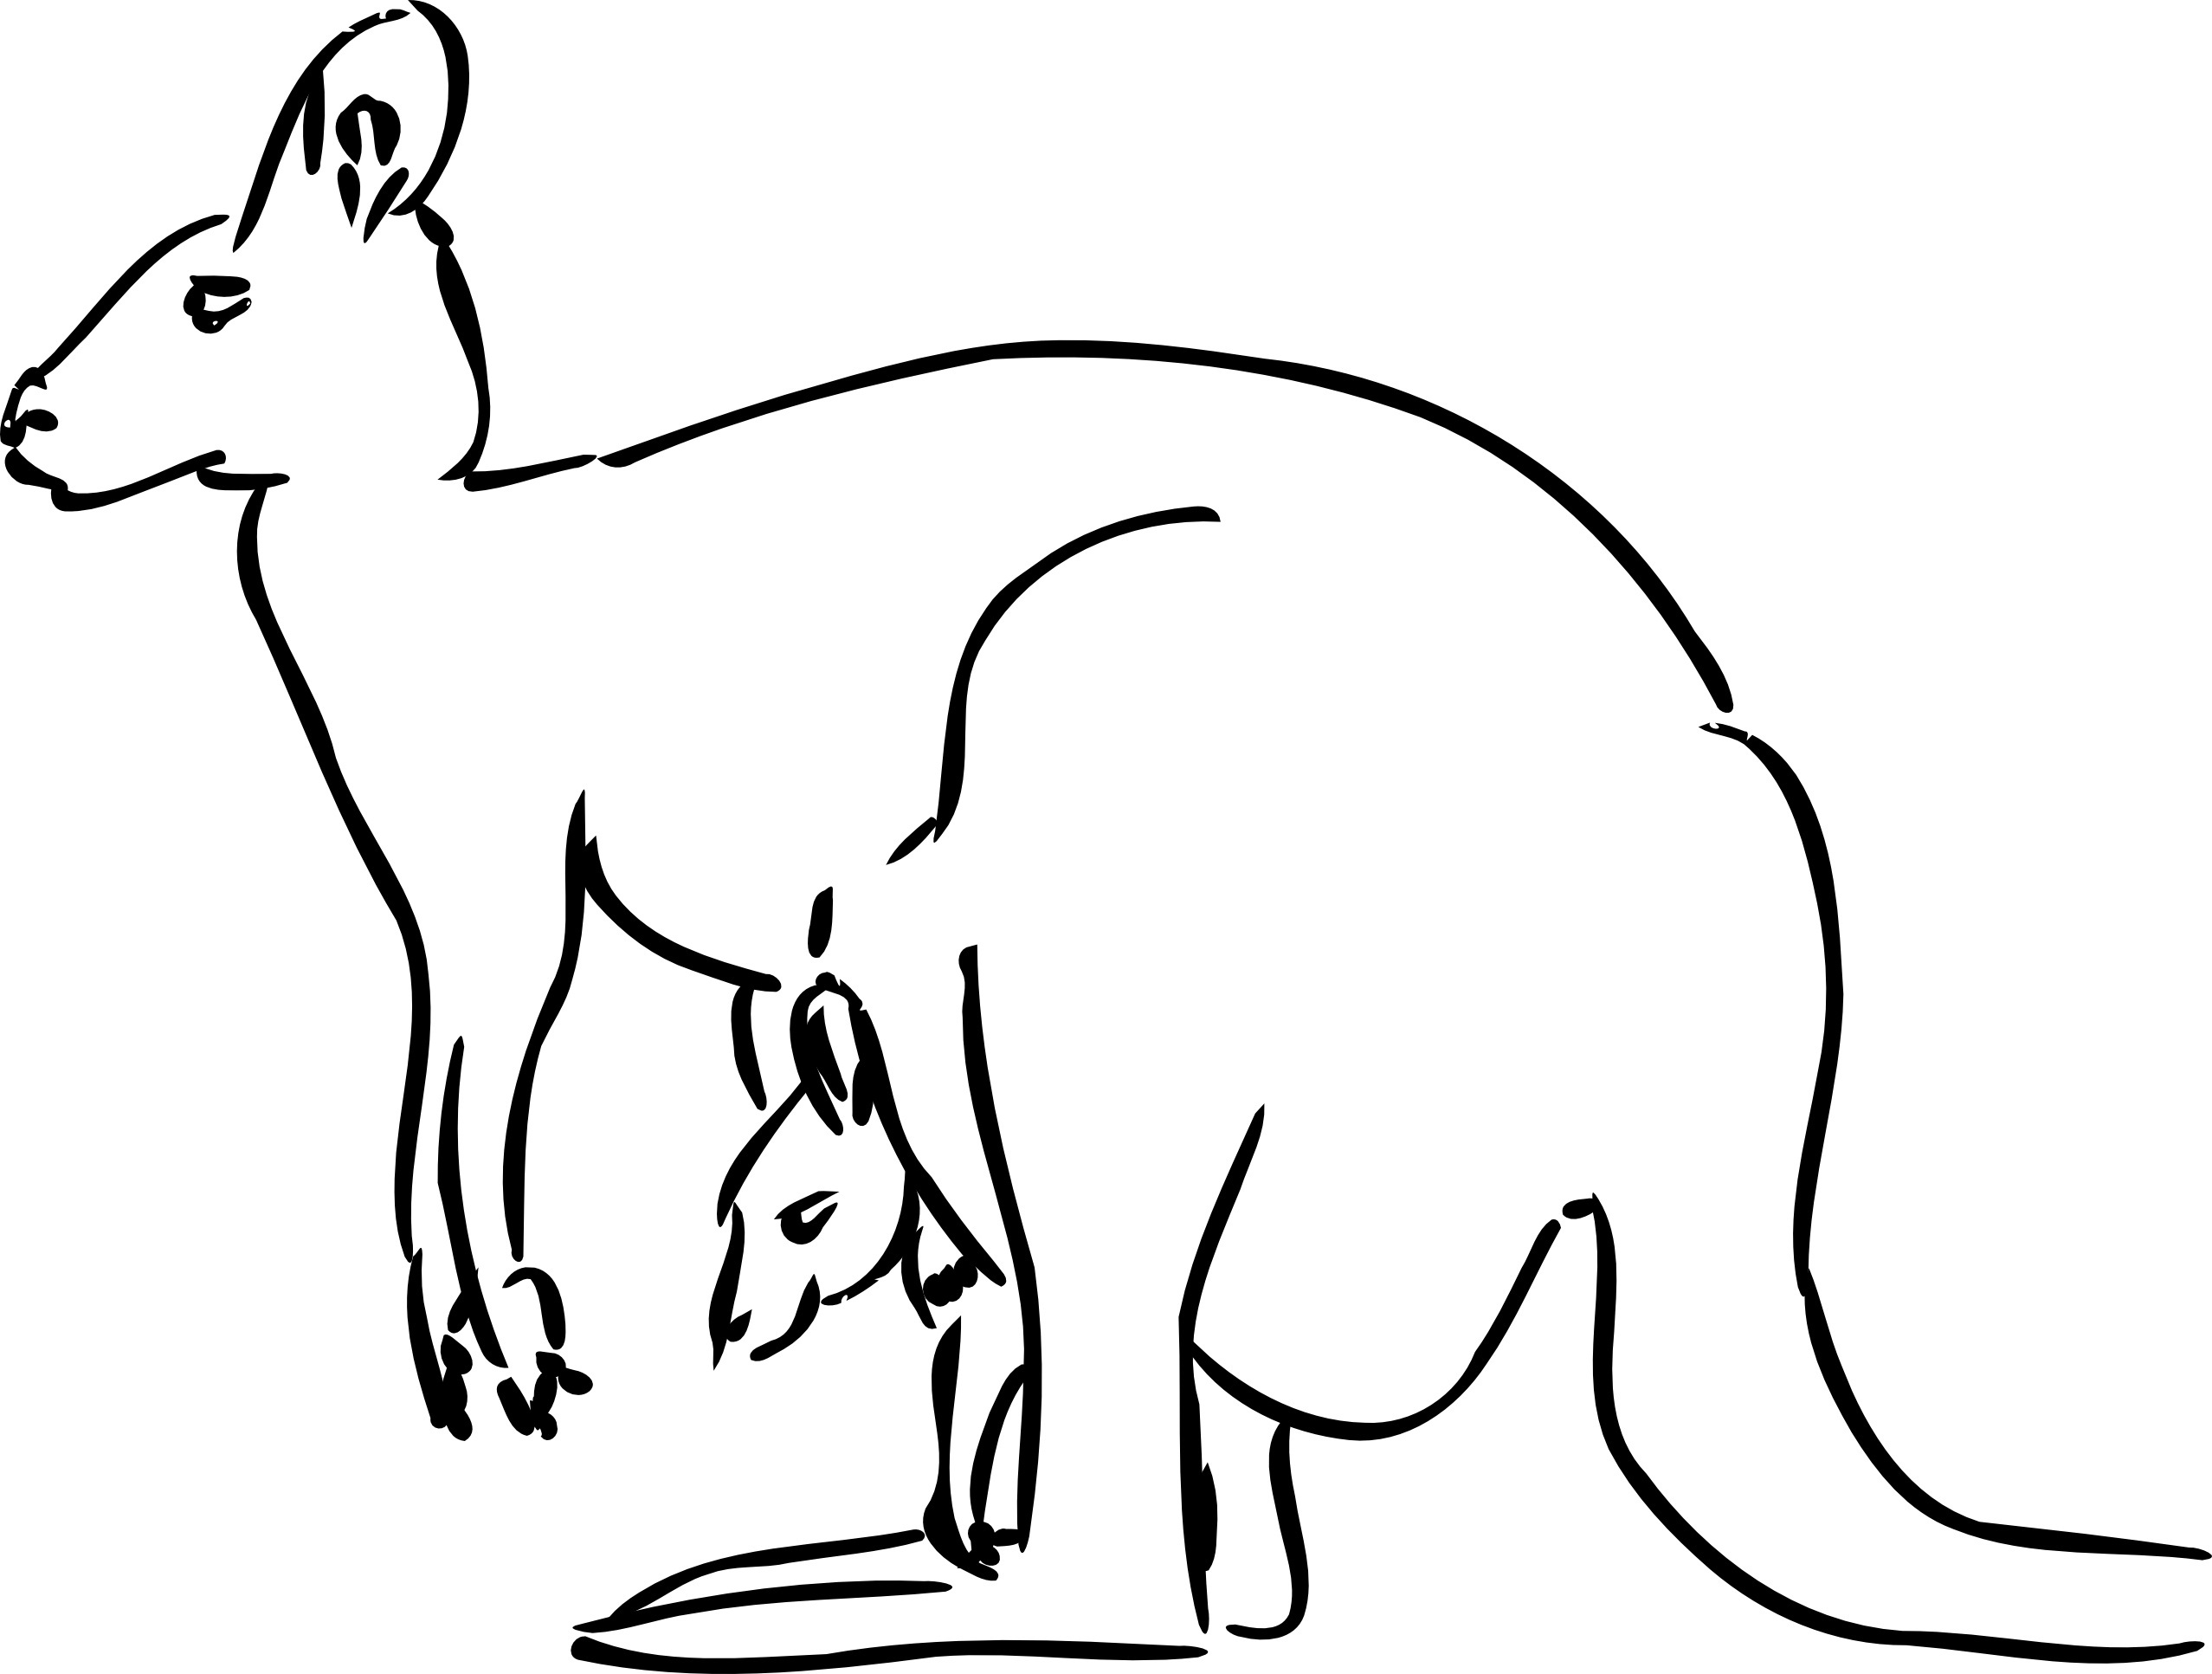 Kangaroo coloring #2, Download drawings